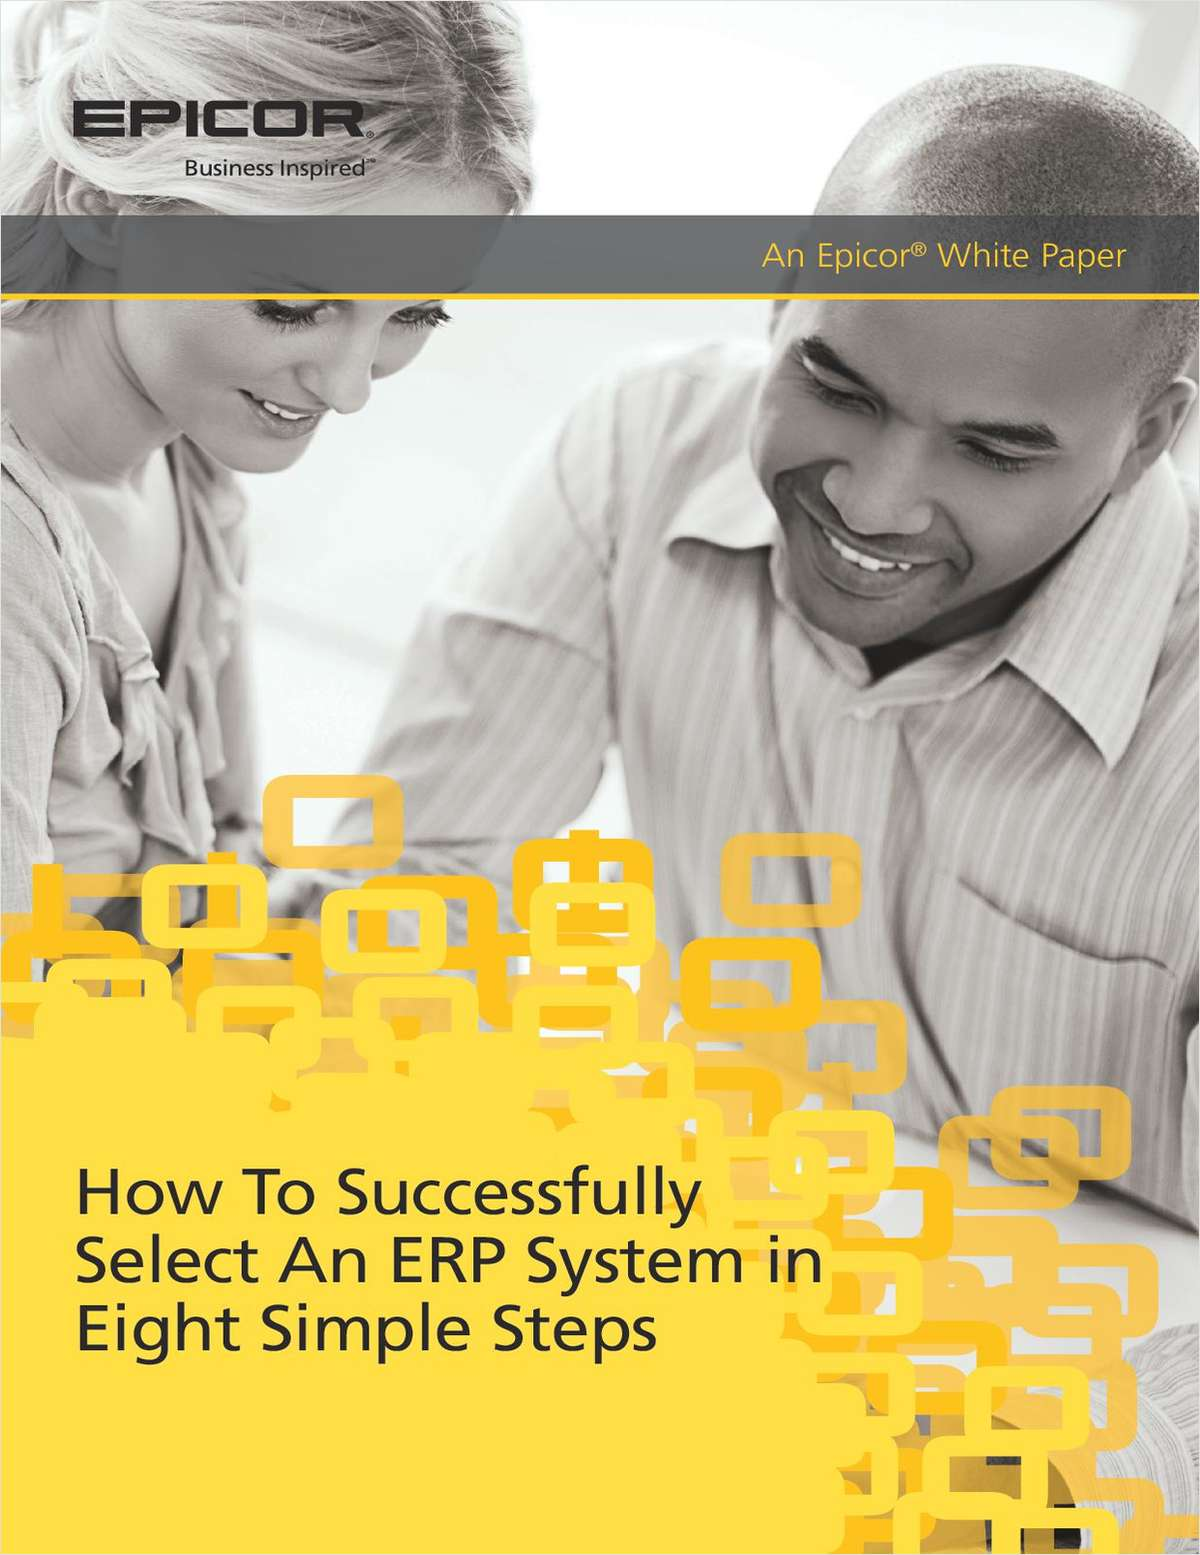 8 Simple Steps to Successfully Select an ERP System